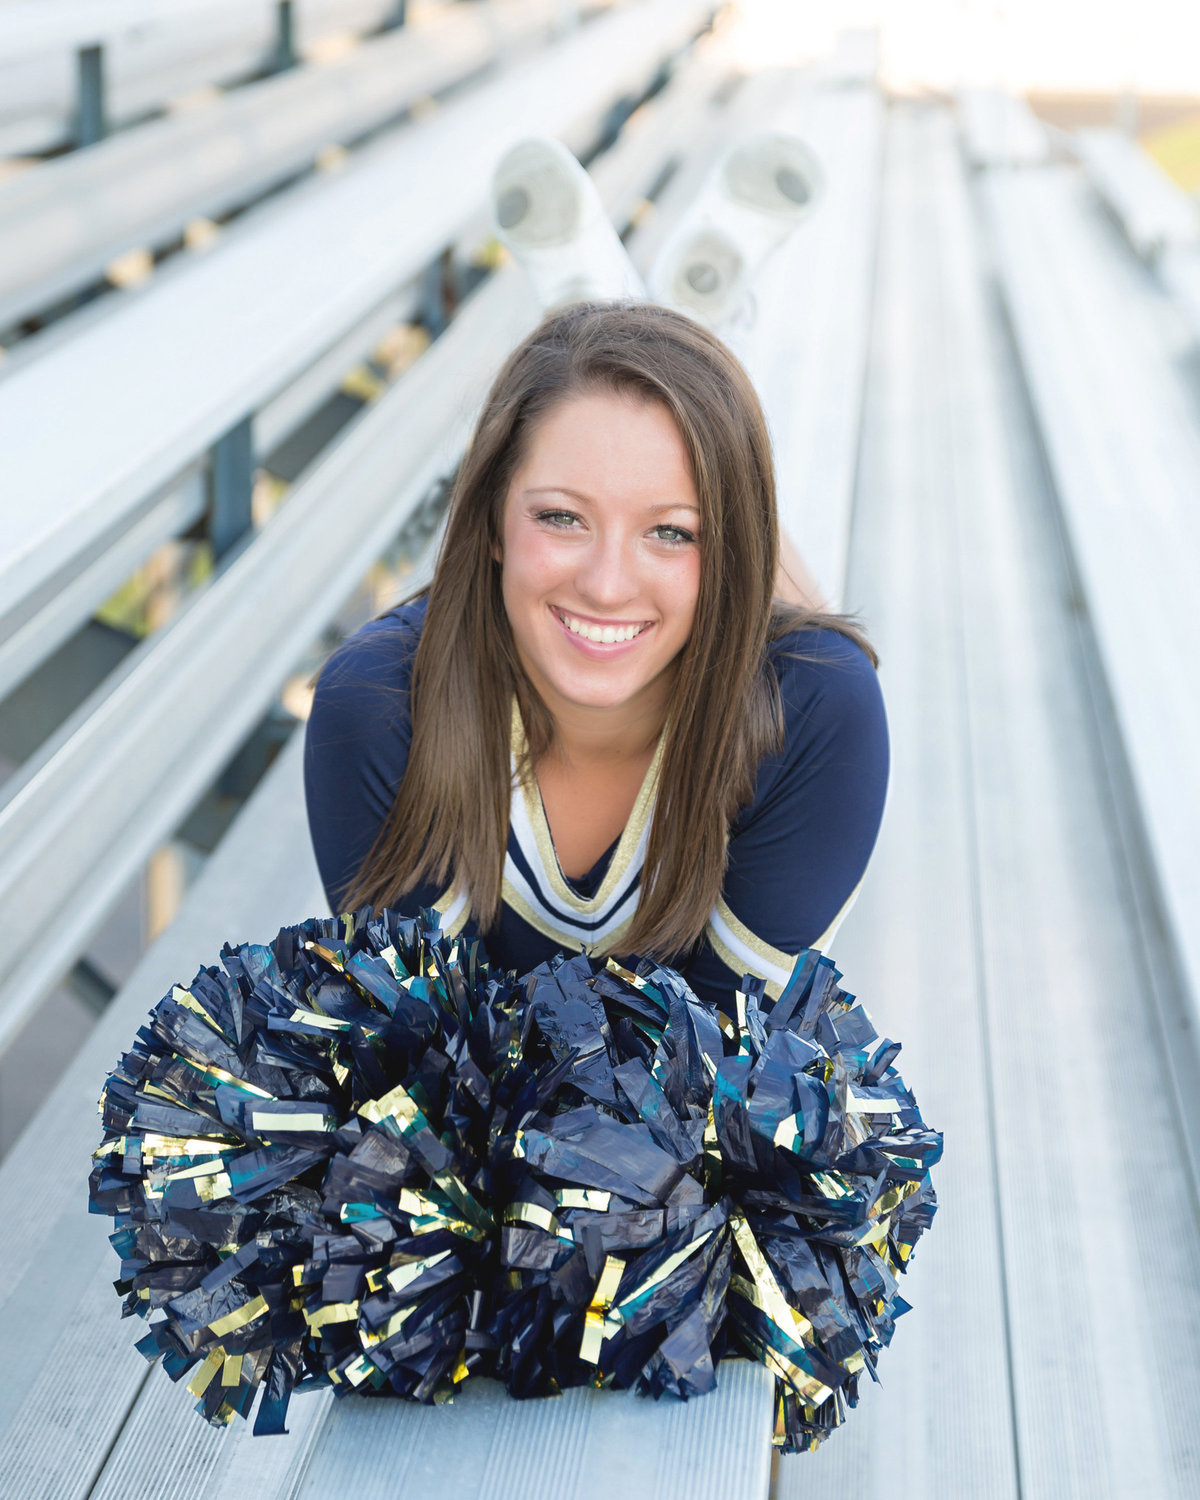 Kate-bleachers-A44A2678-P-sp-8x10-e2